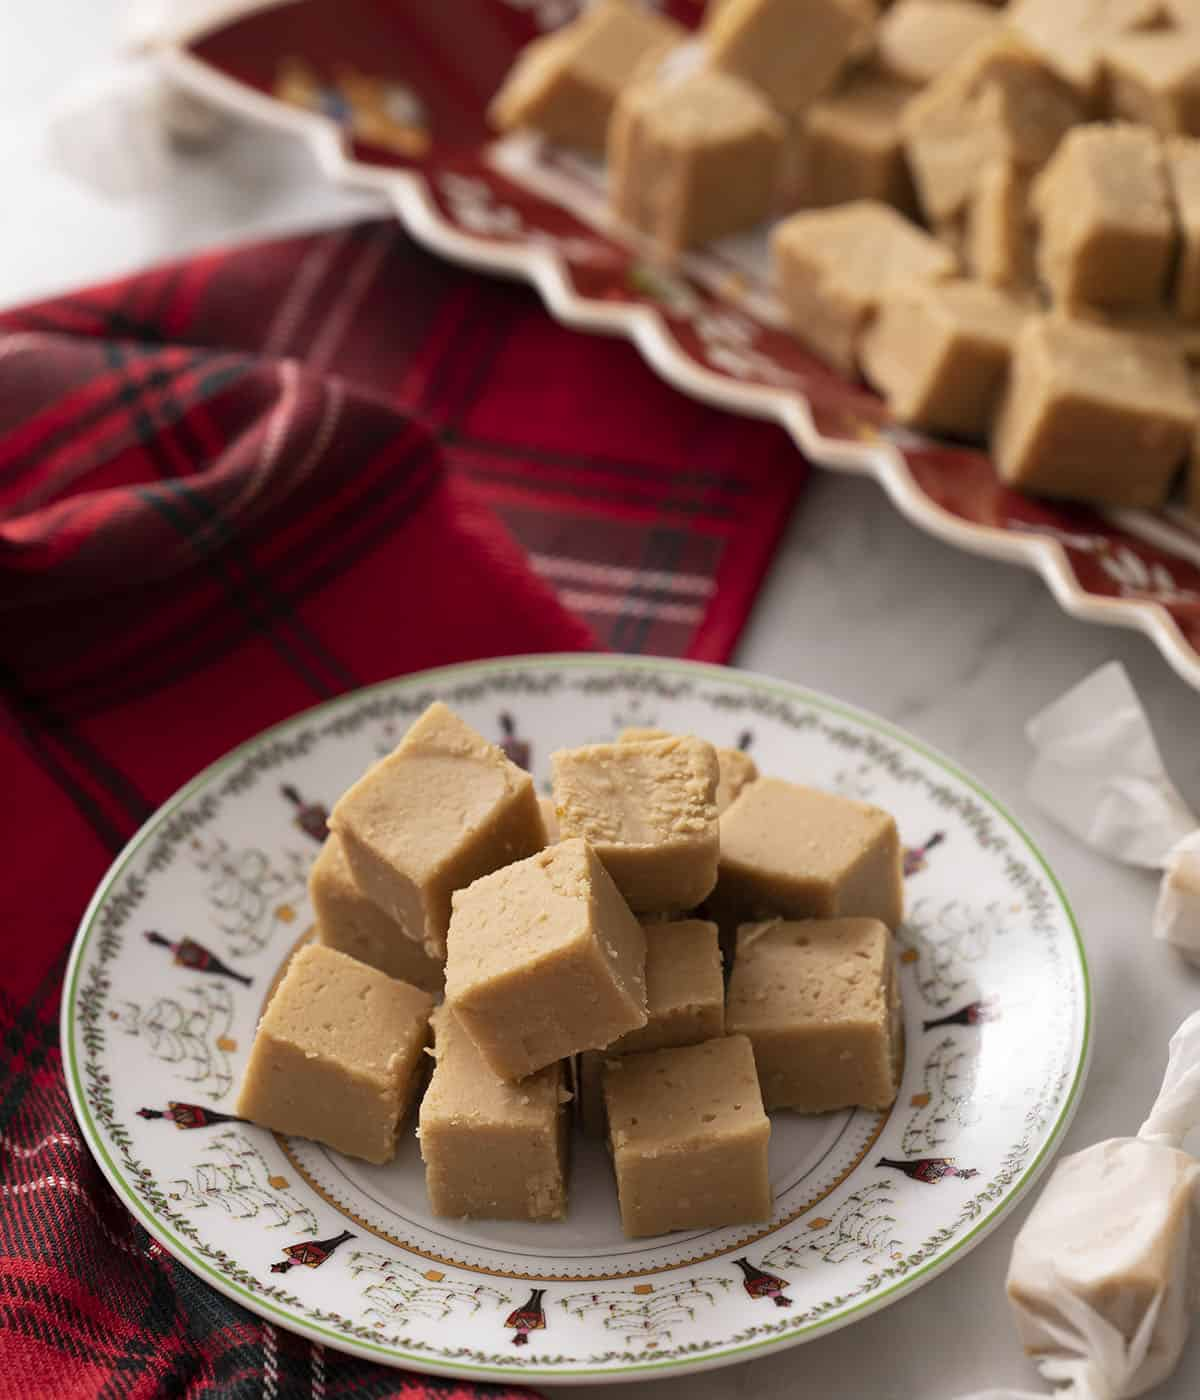 A pile of peanut butter fudge on a holiday plate.